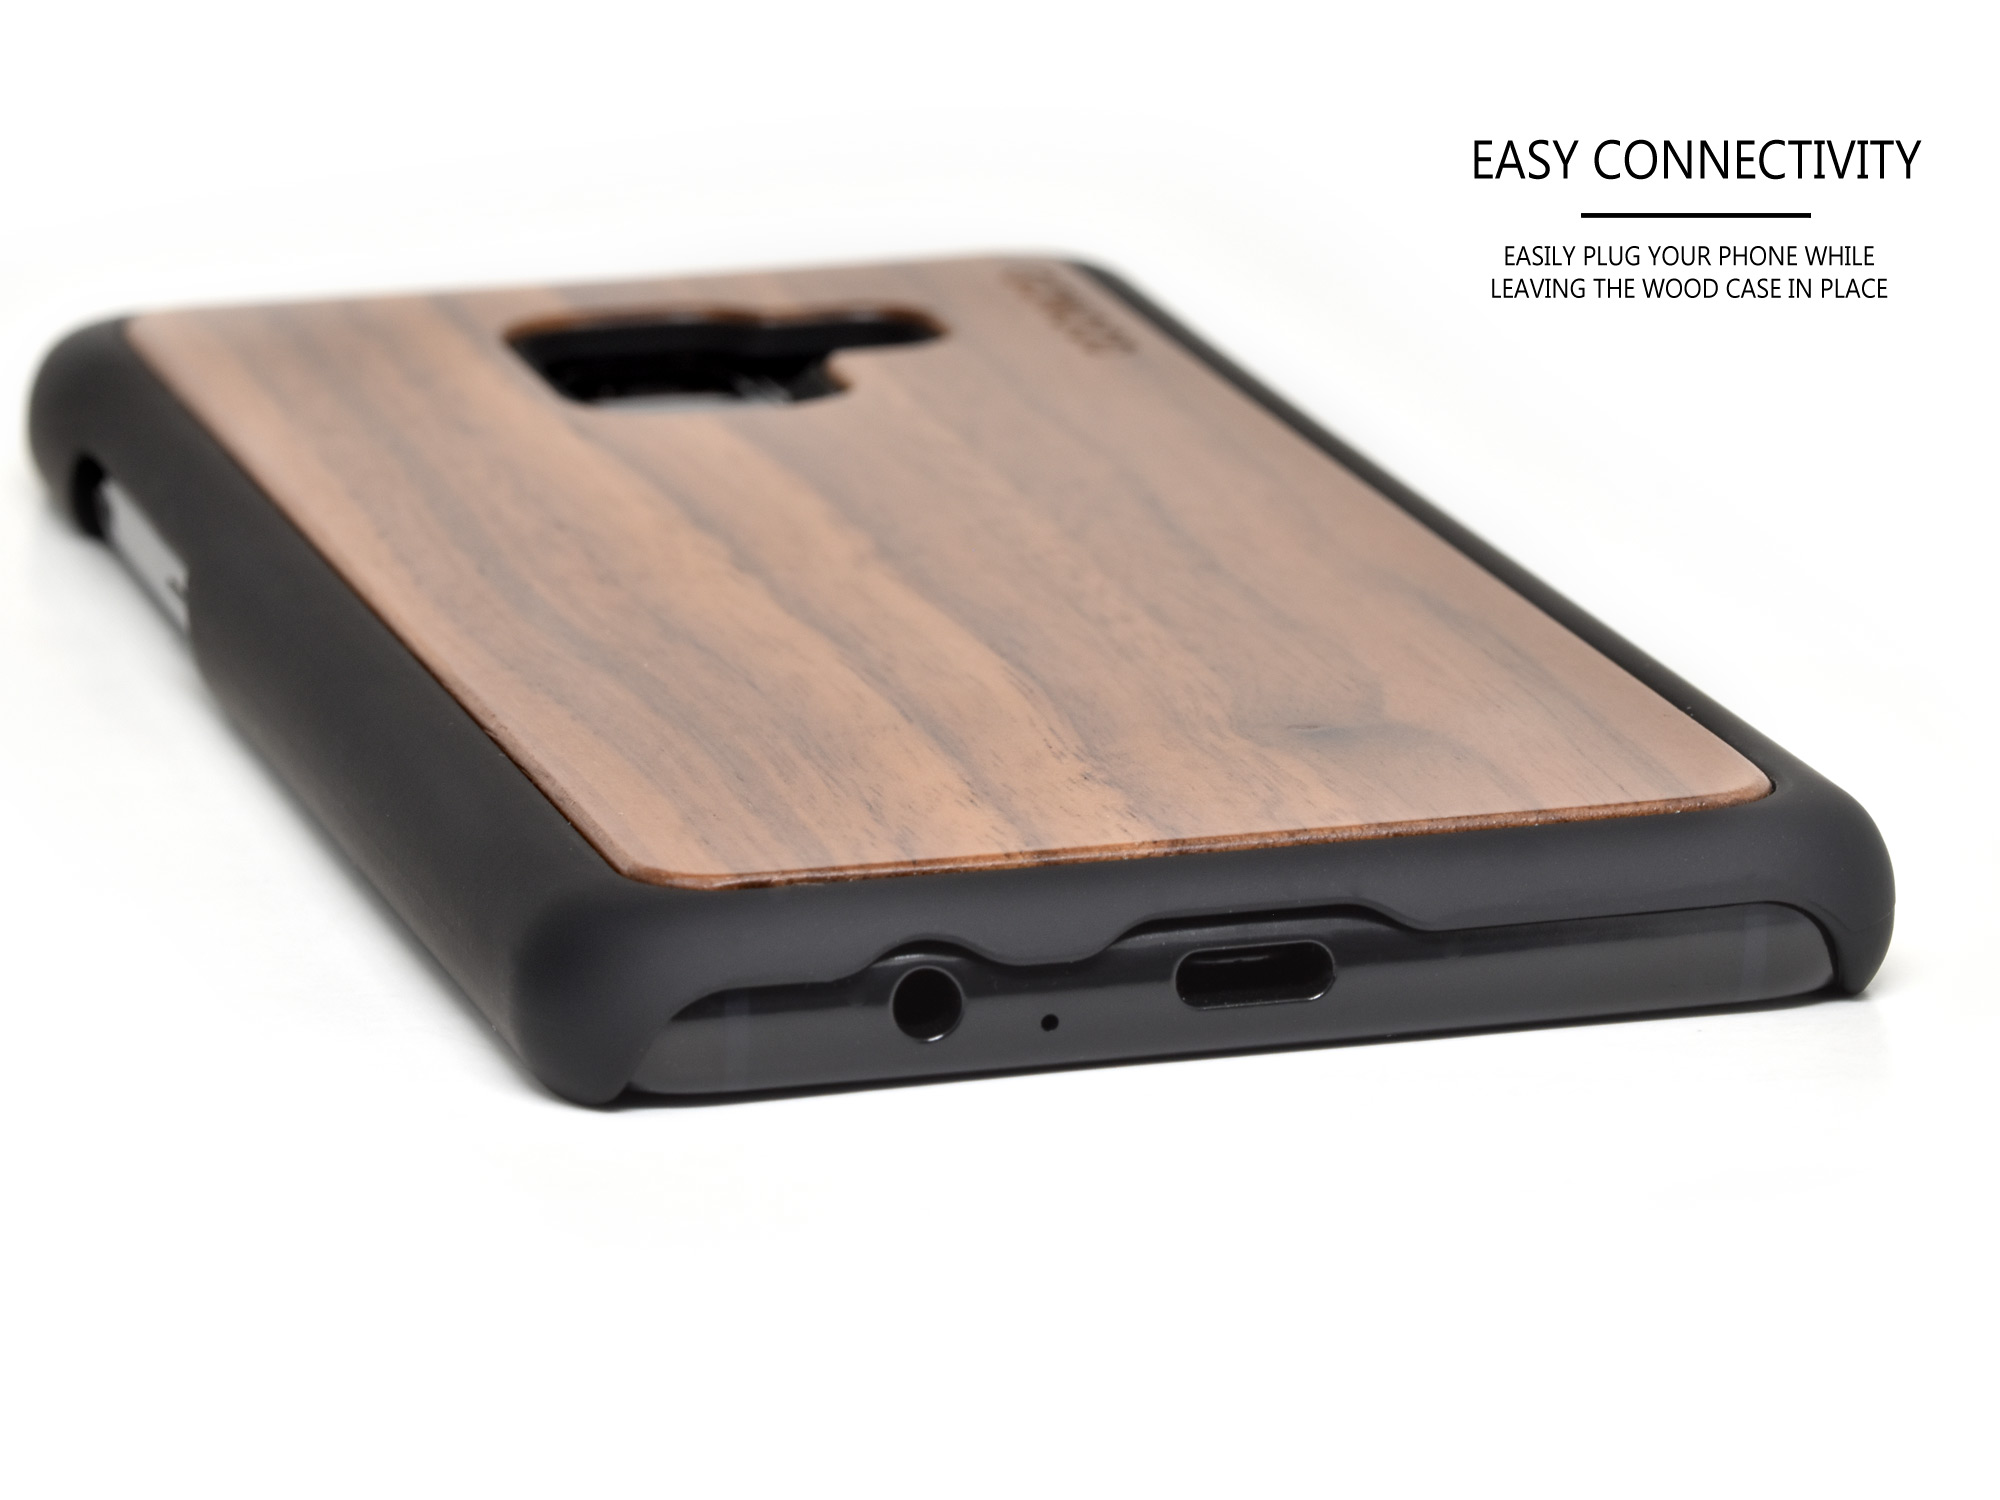 Samsung Galaxy A8 wood case walnut